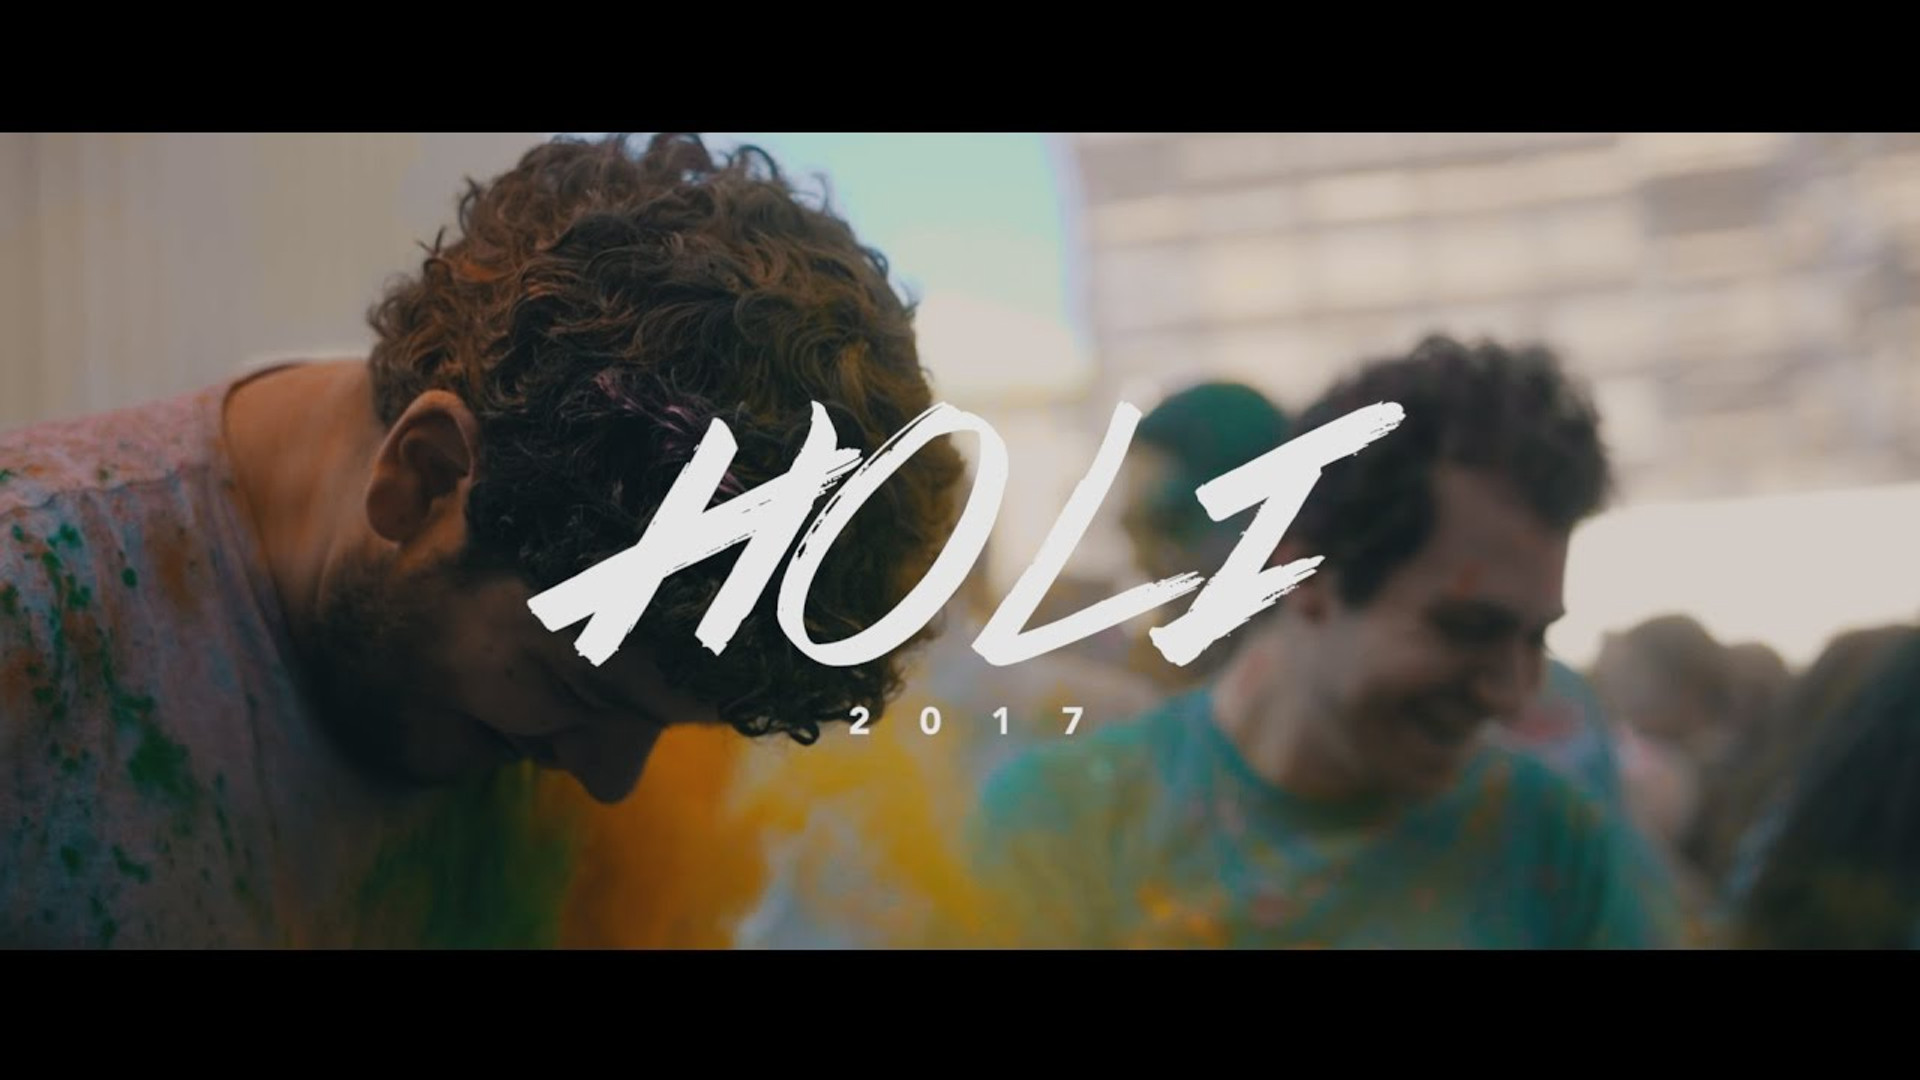 HOLI 2017   Columbia University   GH4/Twixtor/VisionColor LUTs